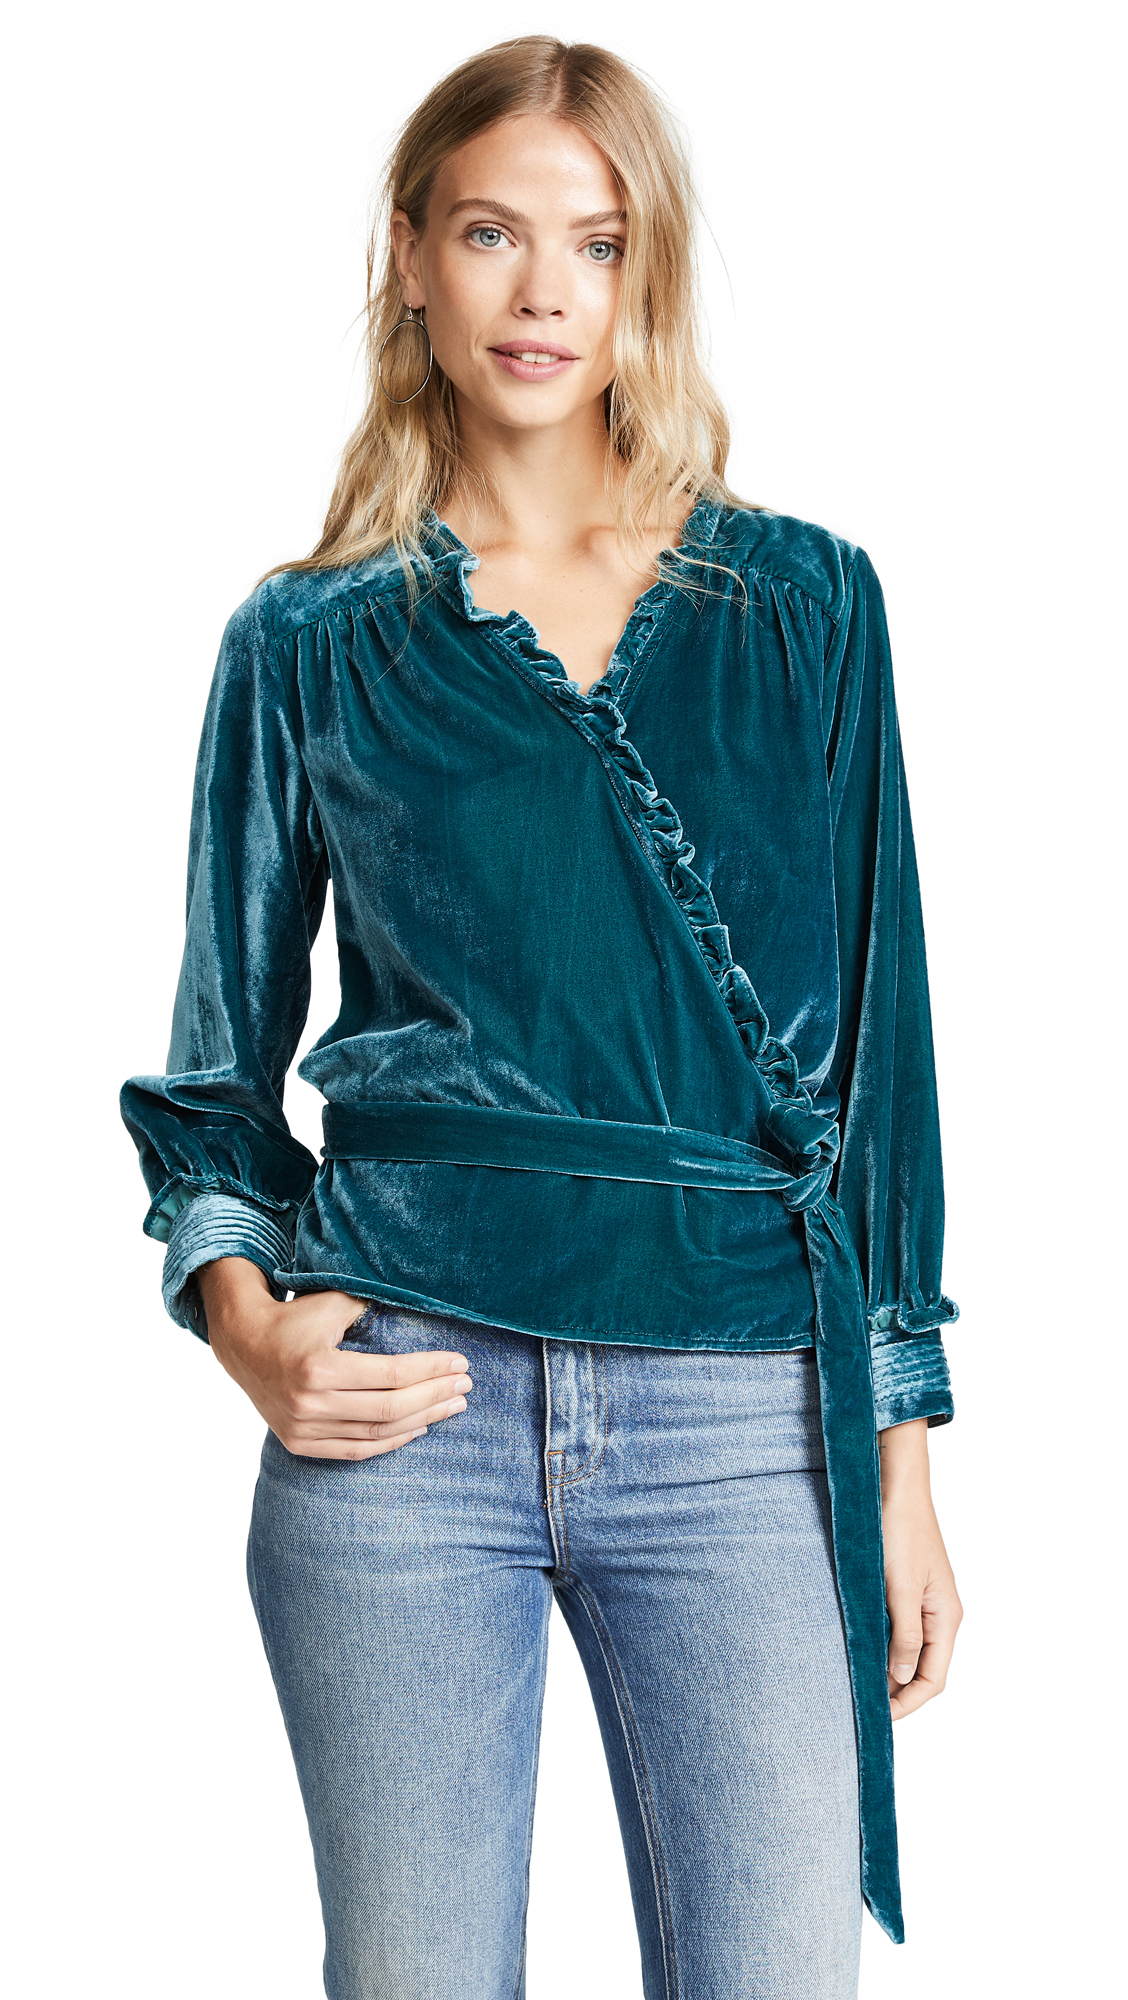 BIRDS OF PARADIS The Jessica Wrap Blouse in Pine